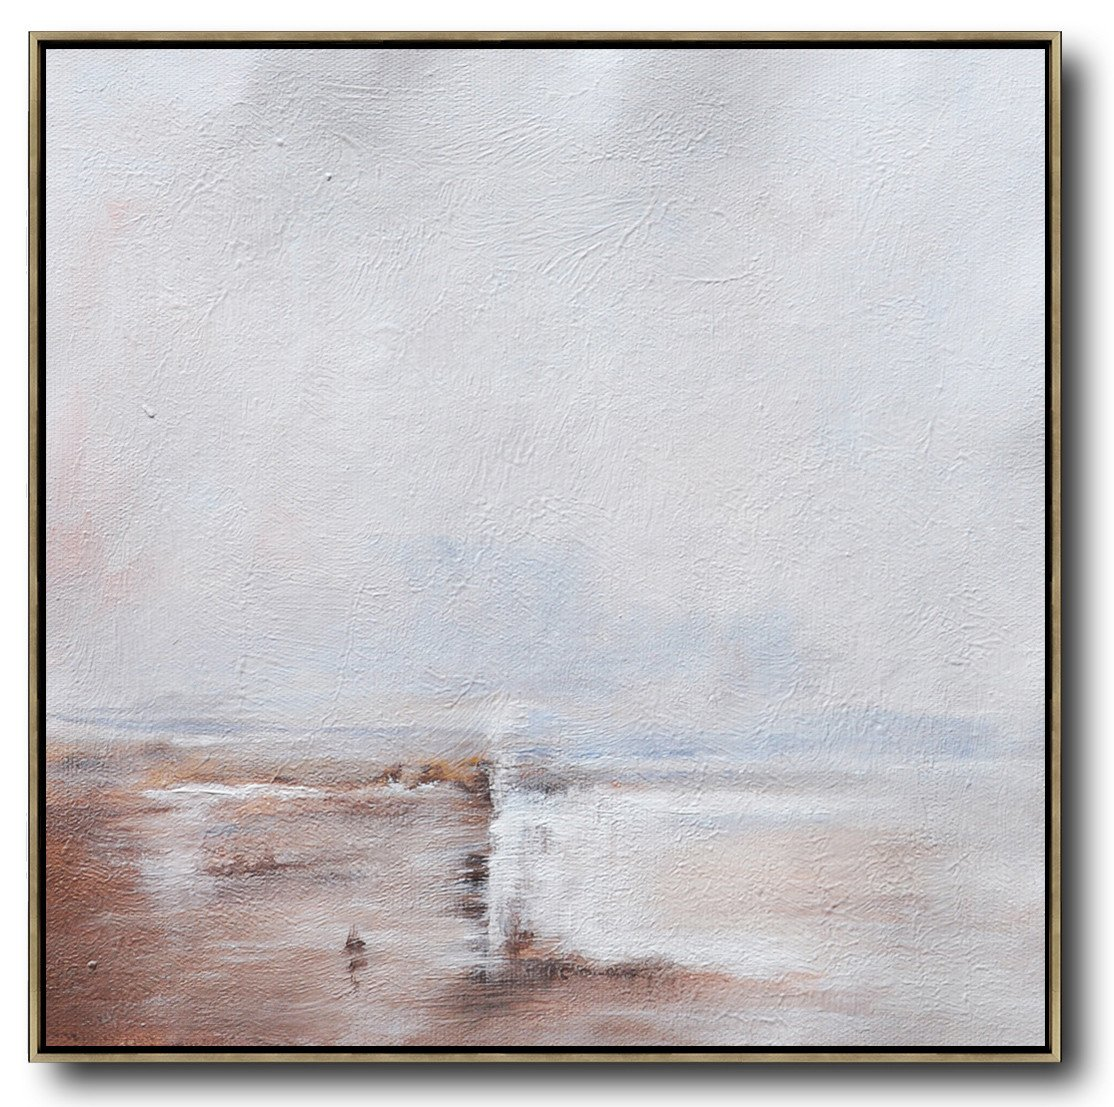 Extra Large Painting,Oversized Abstract Landscape Painting,Acrylic Painting On Canvas,White,Brown,White.etc